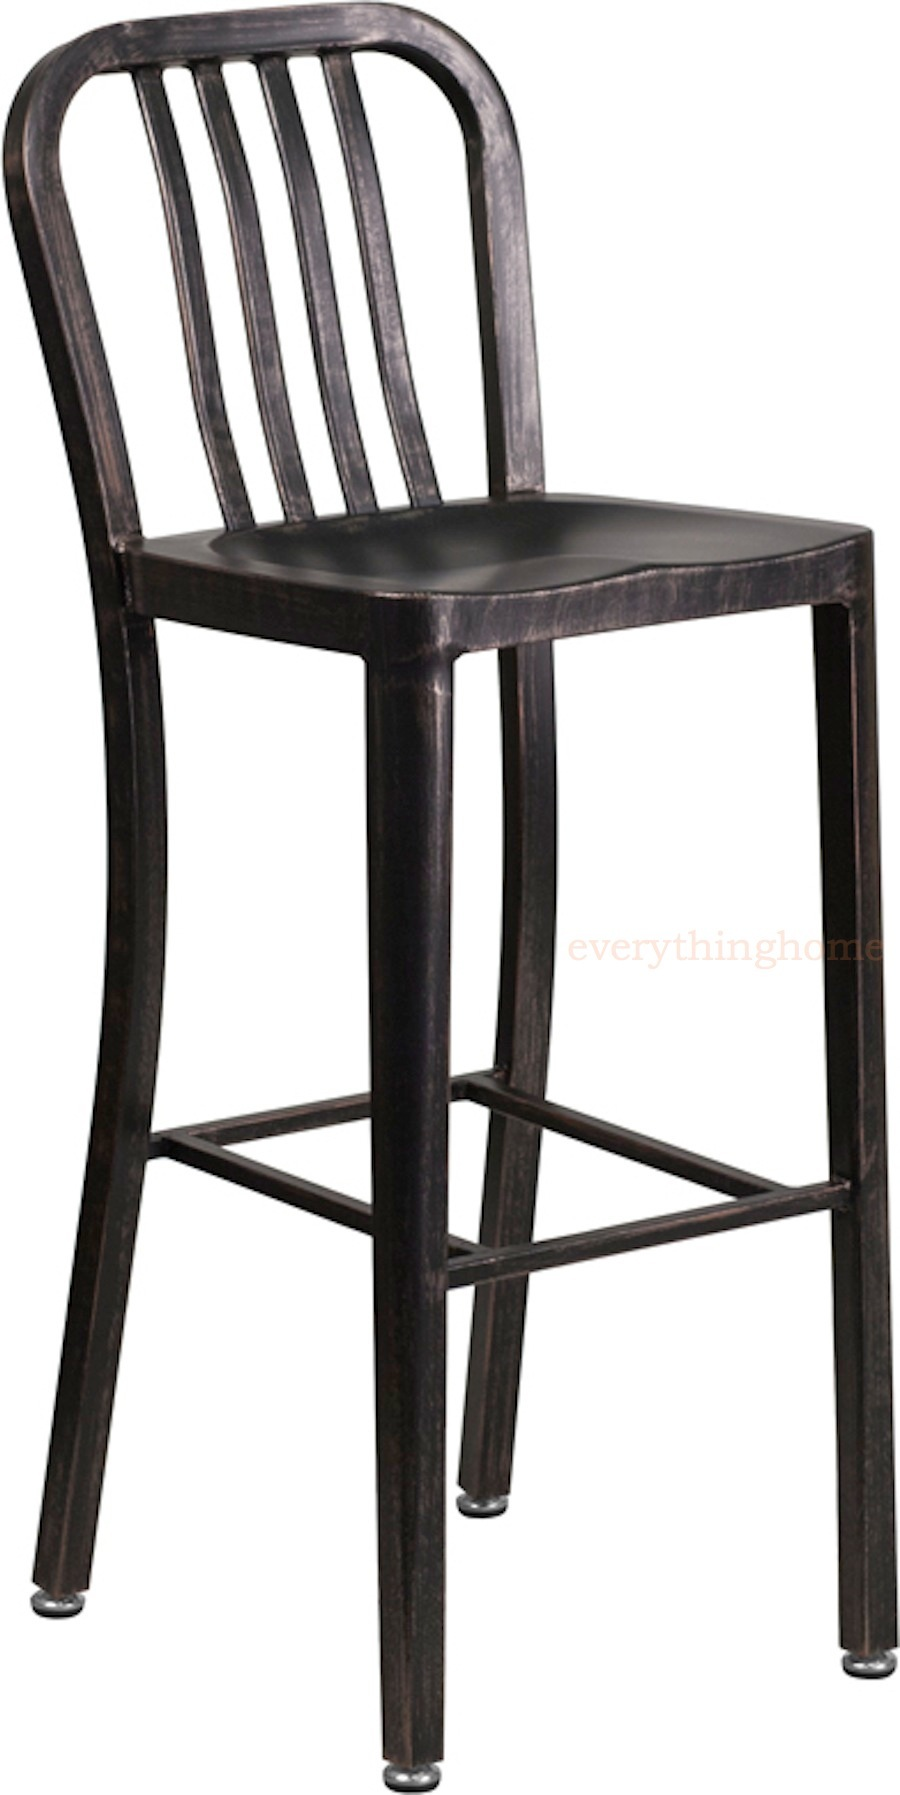 Miraculous Details About Black Antiqued Gold Navy Style Bar Stool High Top Cafe Patio Chair In Outdoor Machost Co Dining Chair Design Ideas Machostcouk